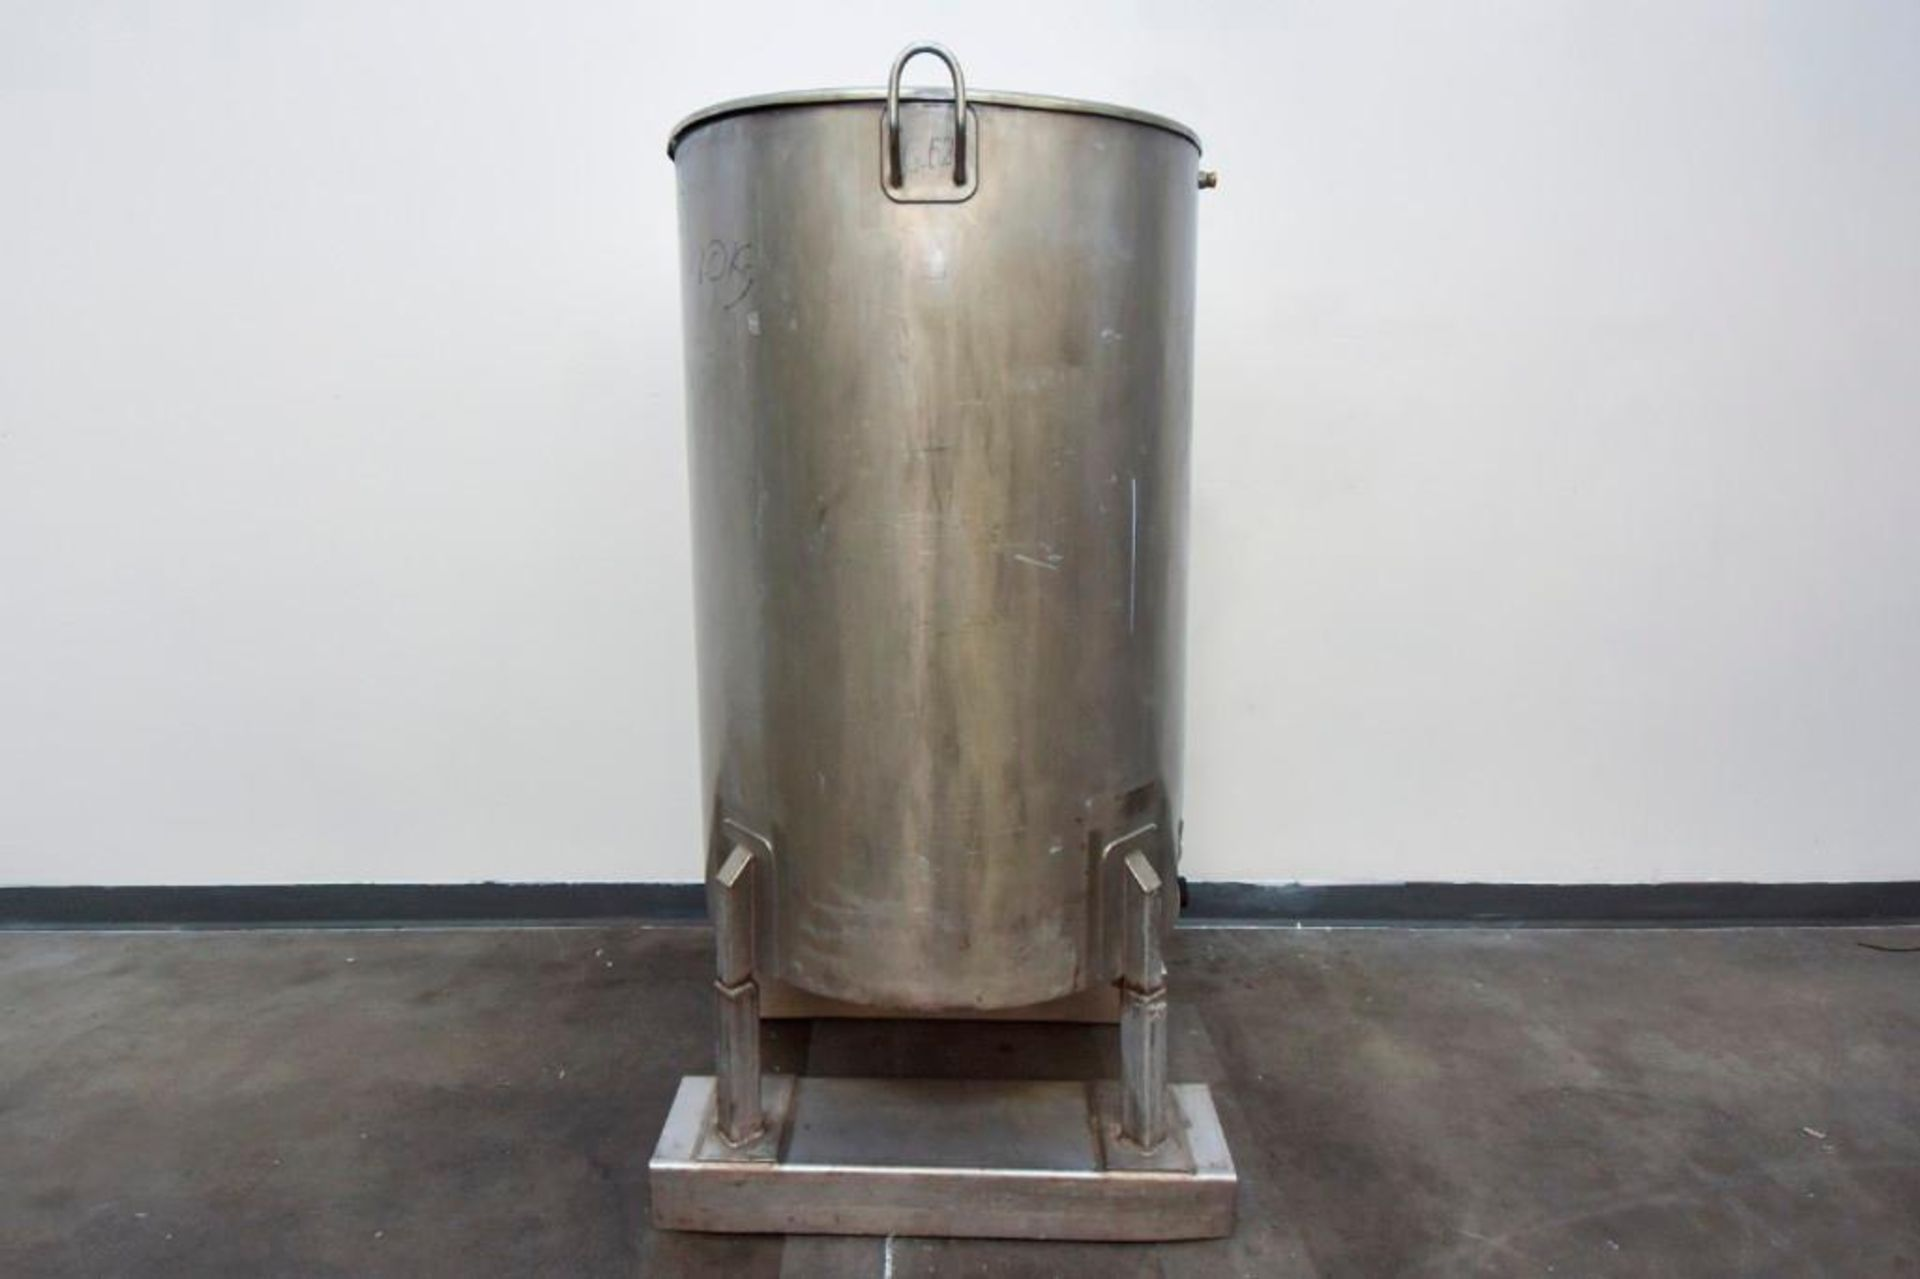 Jacketed Stainless Steel Holding Tank 340L - Image 3 of 13